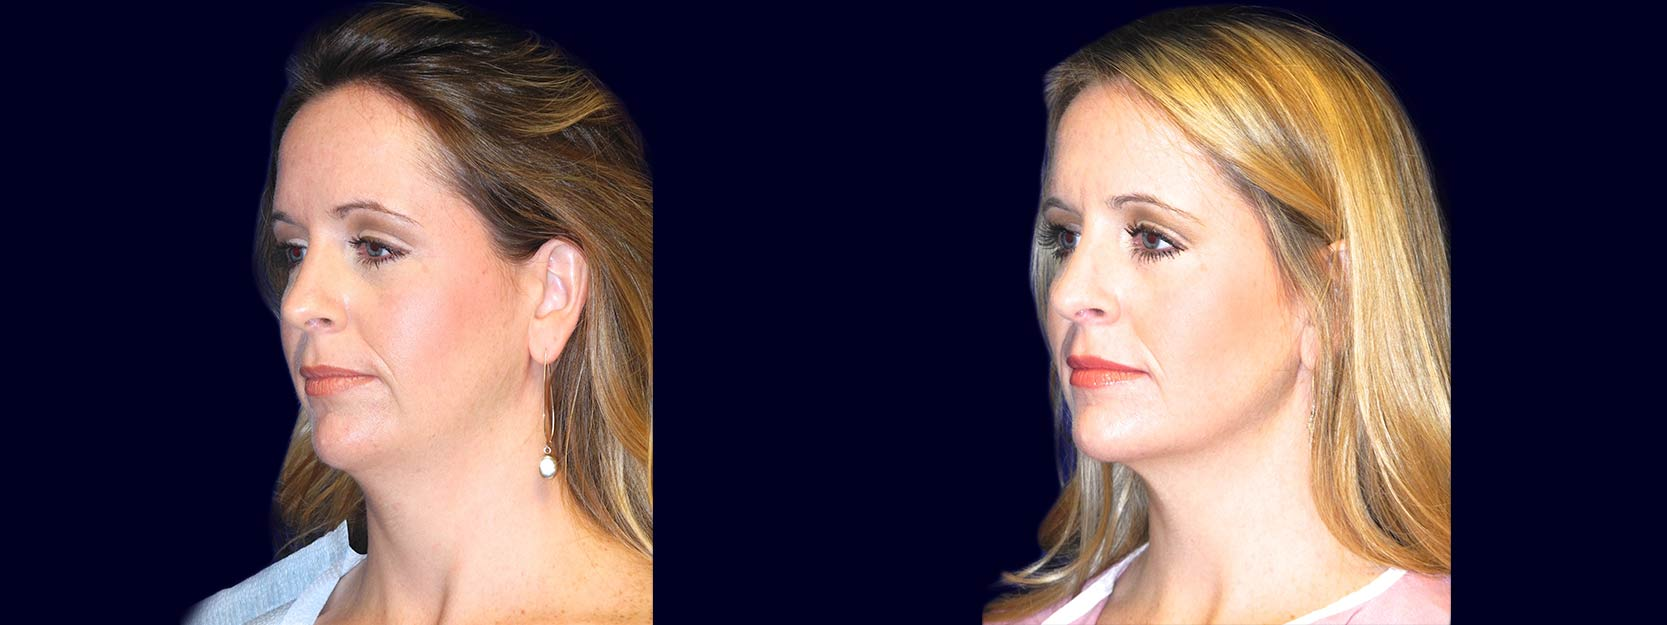 Left 3/4 View - Chin Liposuction